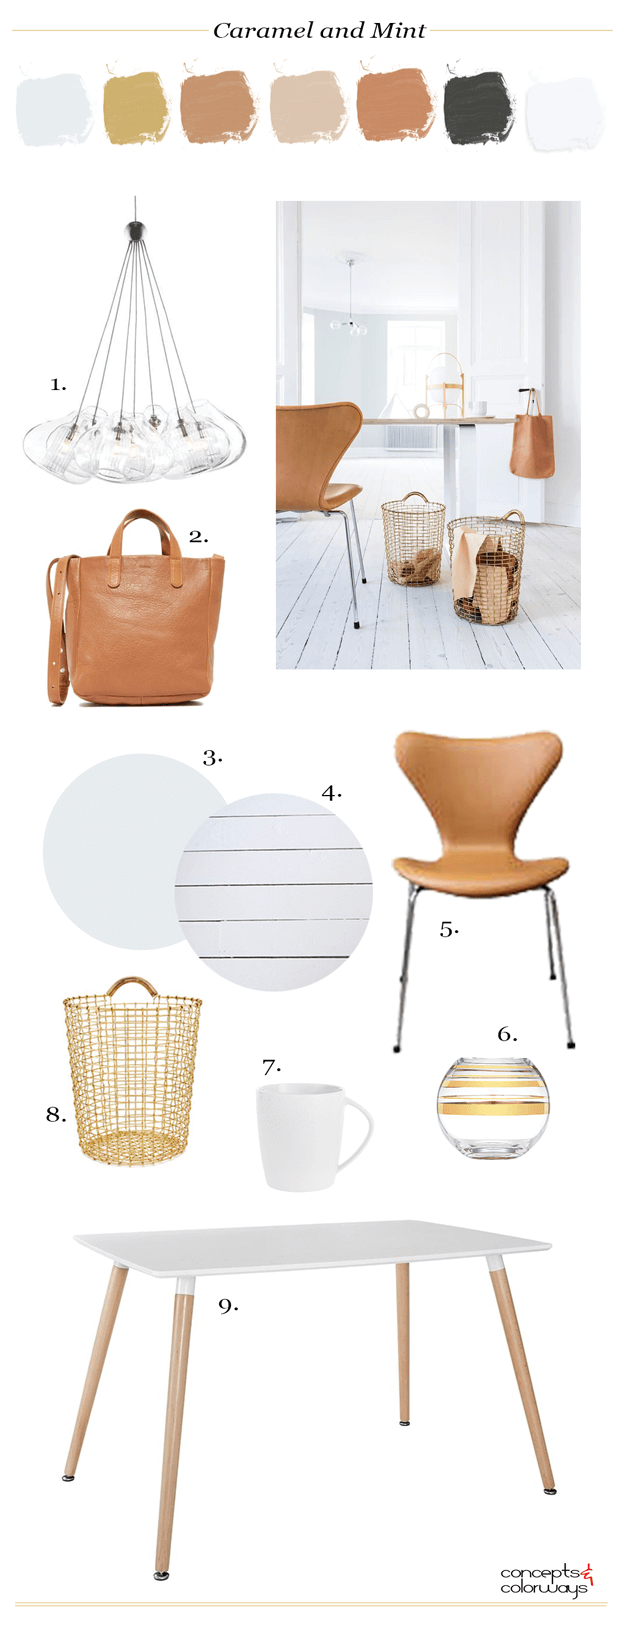 caramel and mint interior design mood board